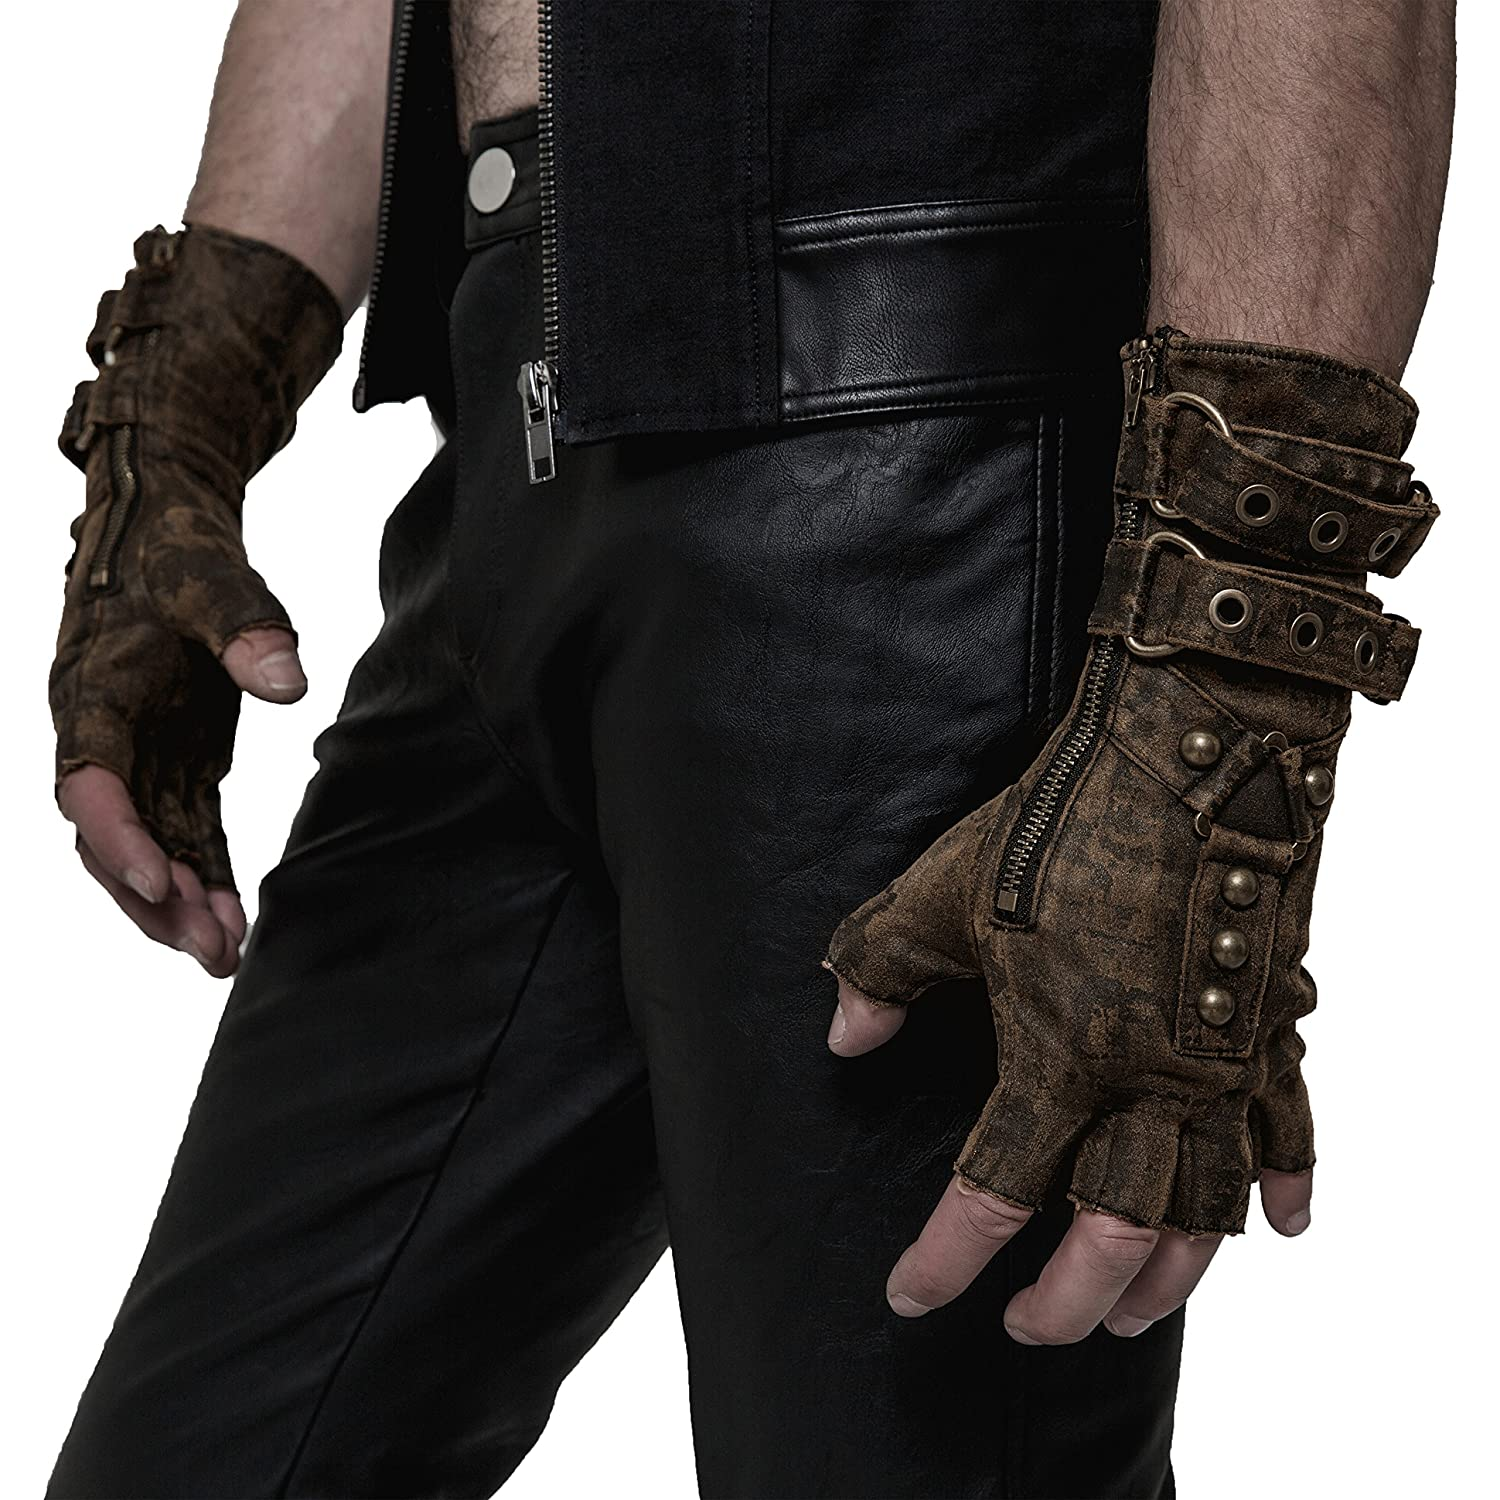 Men's Steampunk Goggles, Guns, Gadgets & Watches Punk Rave Steampunk Fingerless Motorcycle Faux Leather Gloves for Men Accessories $34.58 AT vintagedancer.com